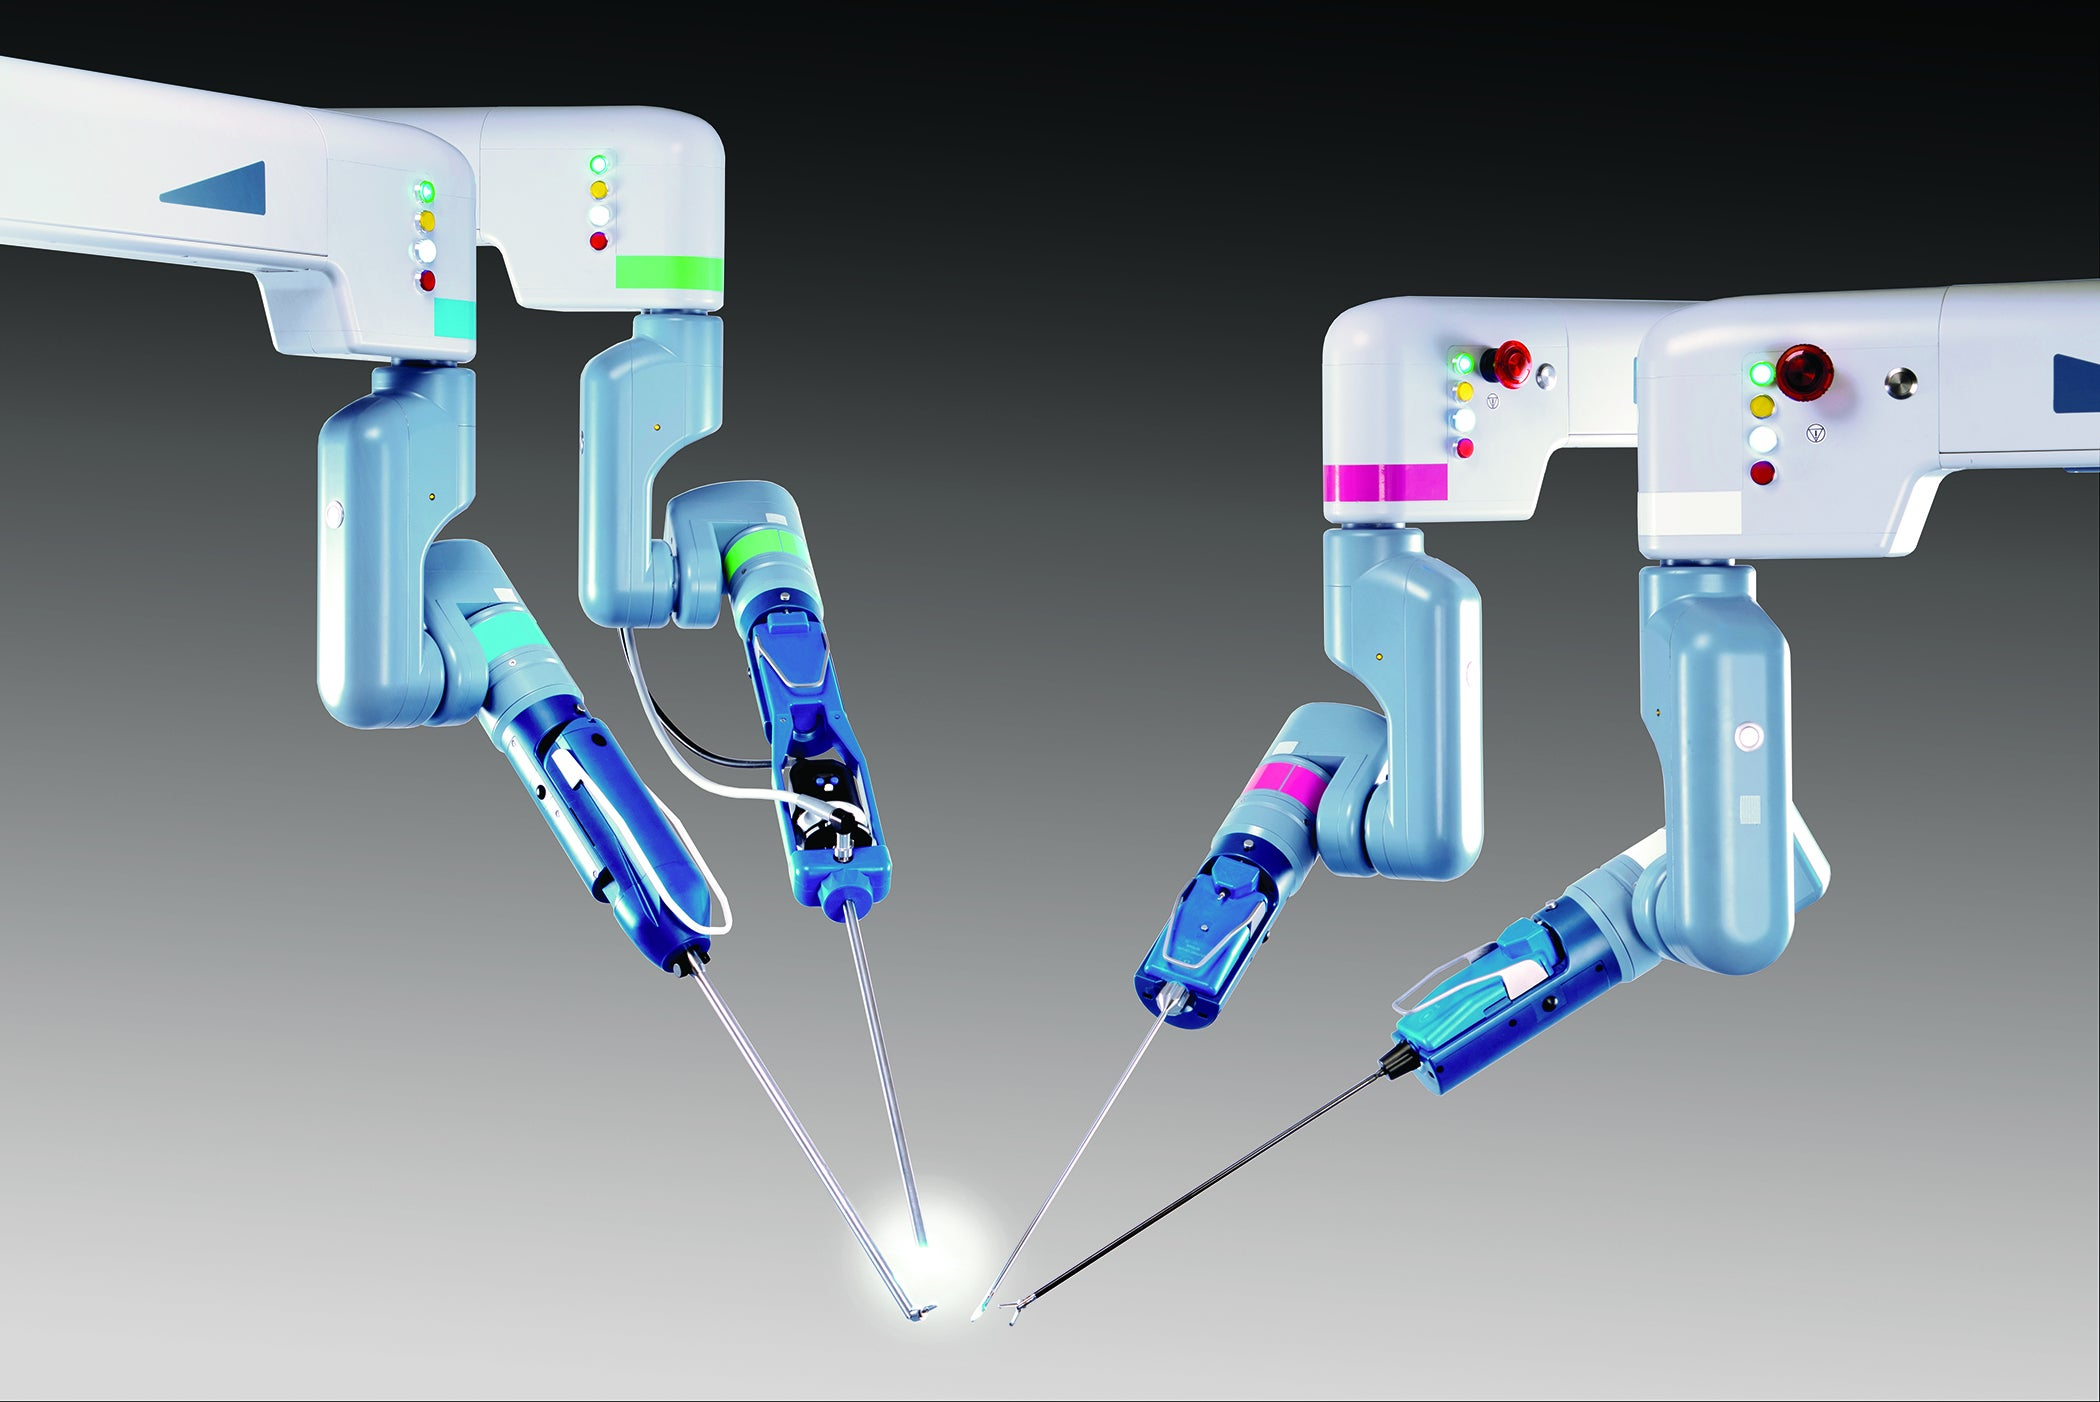 Four Senhance Surgical robot hands